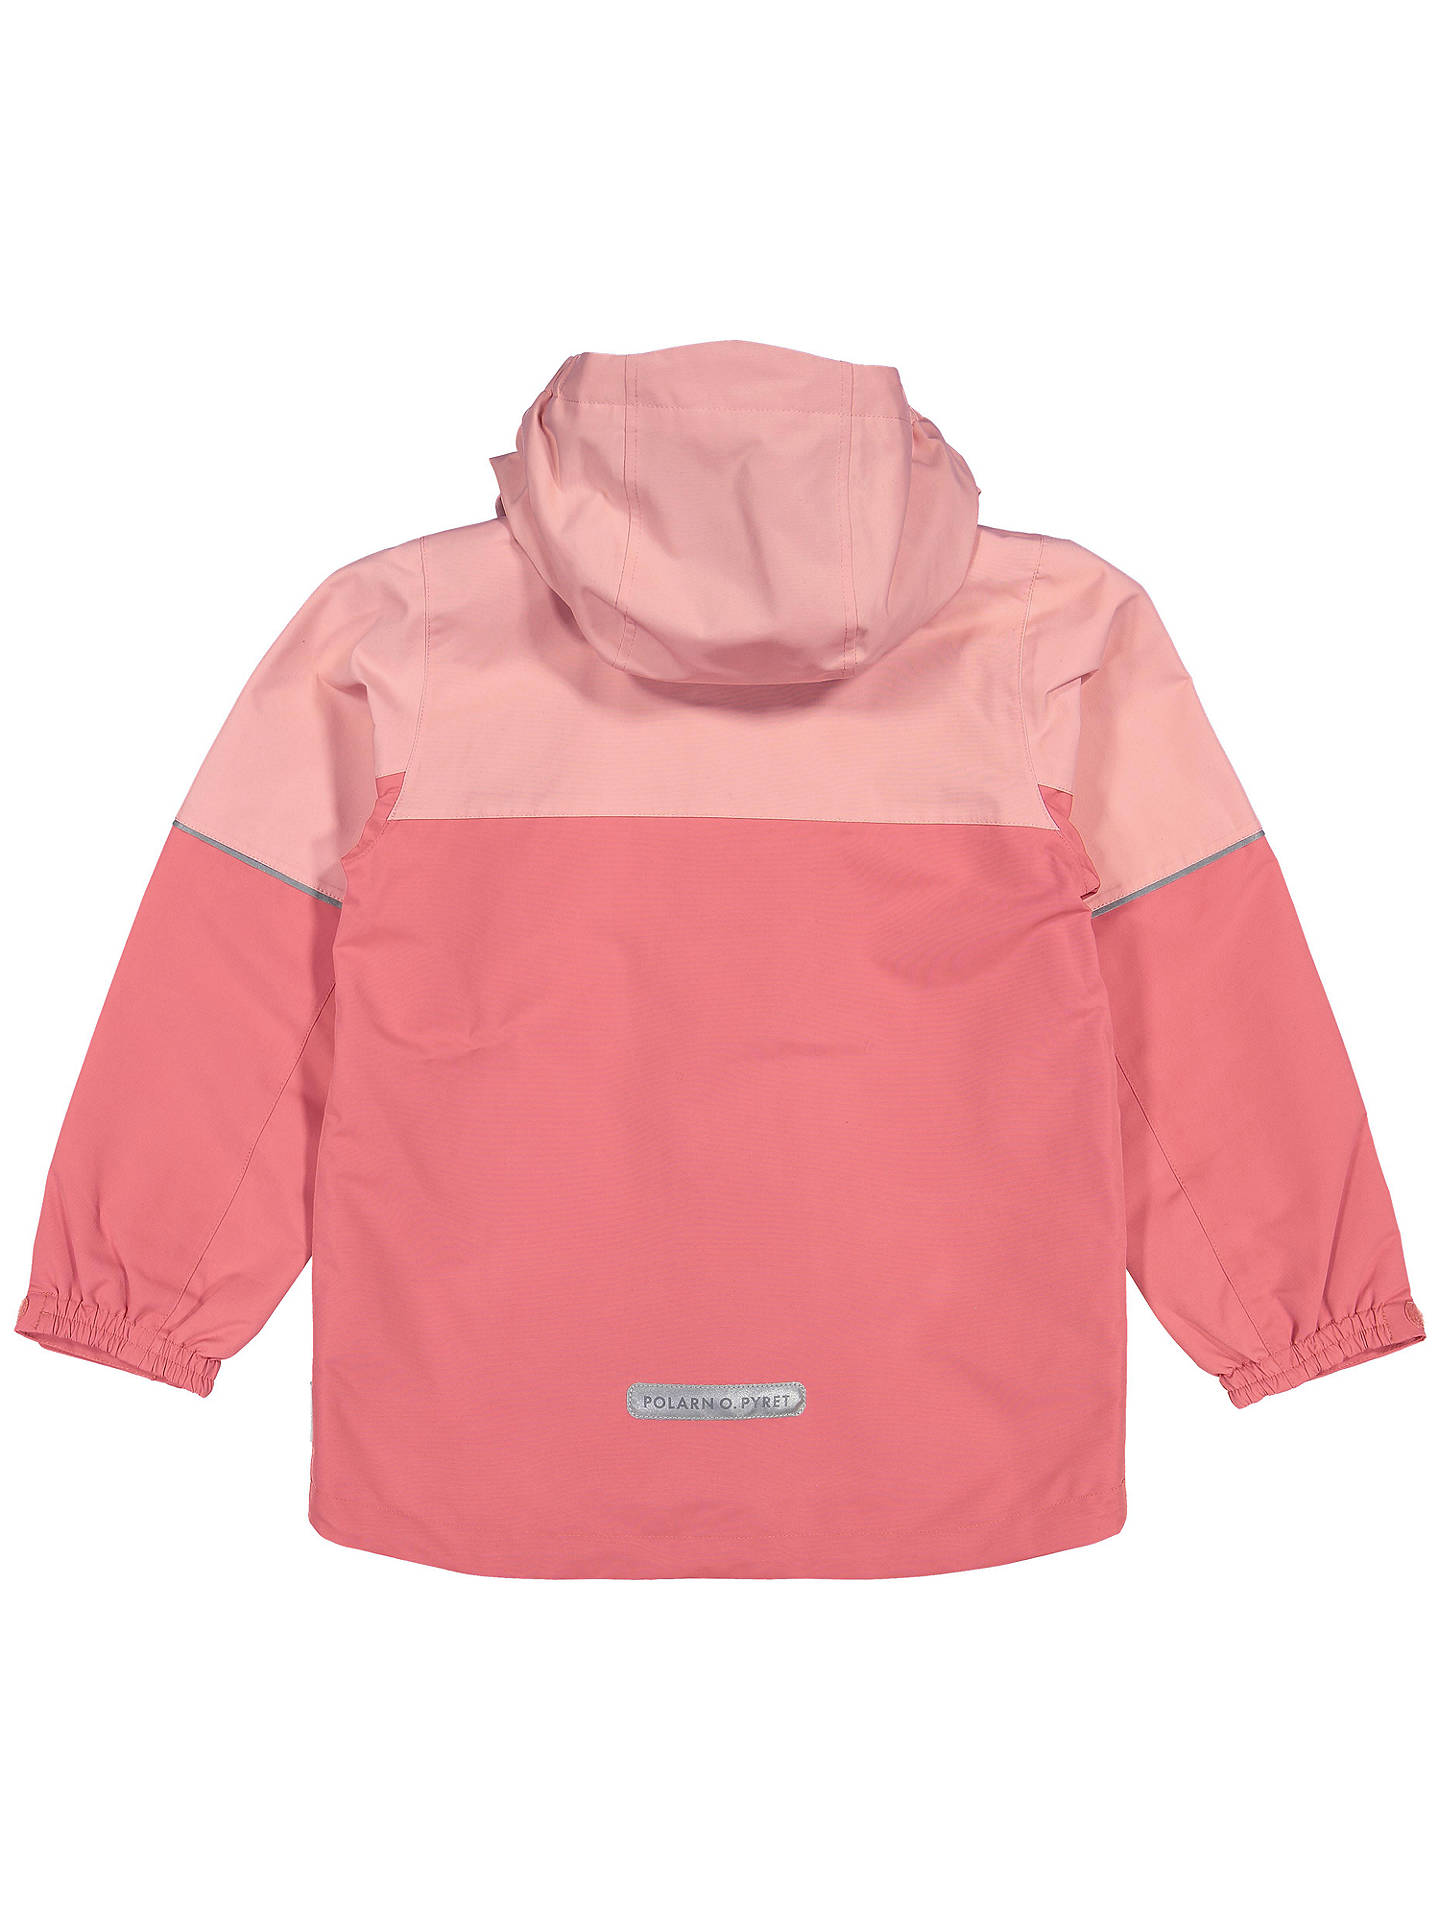 Buy Polarn O. Pyret Children's Waterproof Shell Coat, Pink, 2-3 years Online at johnlewis.com